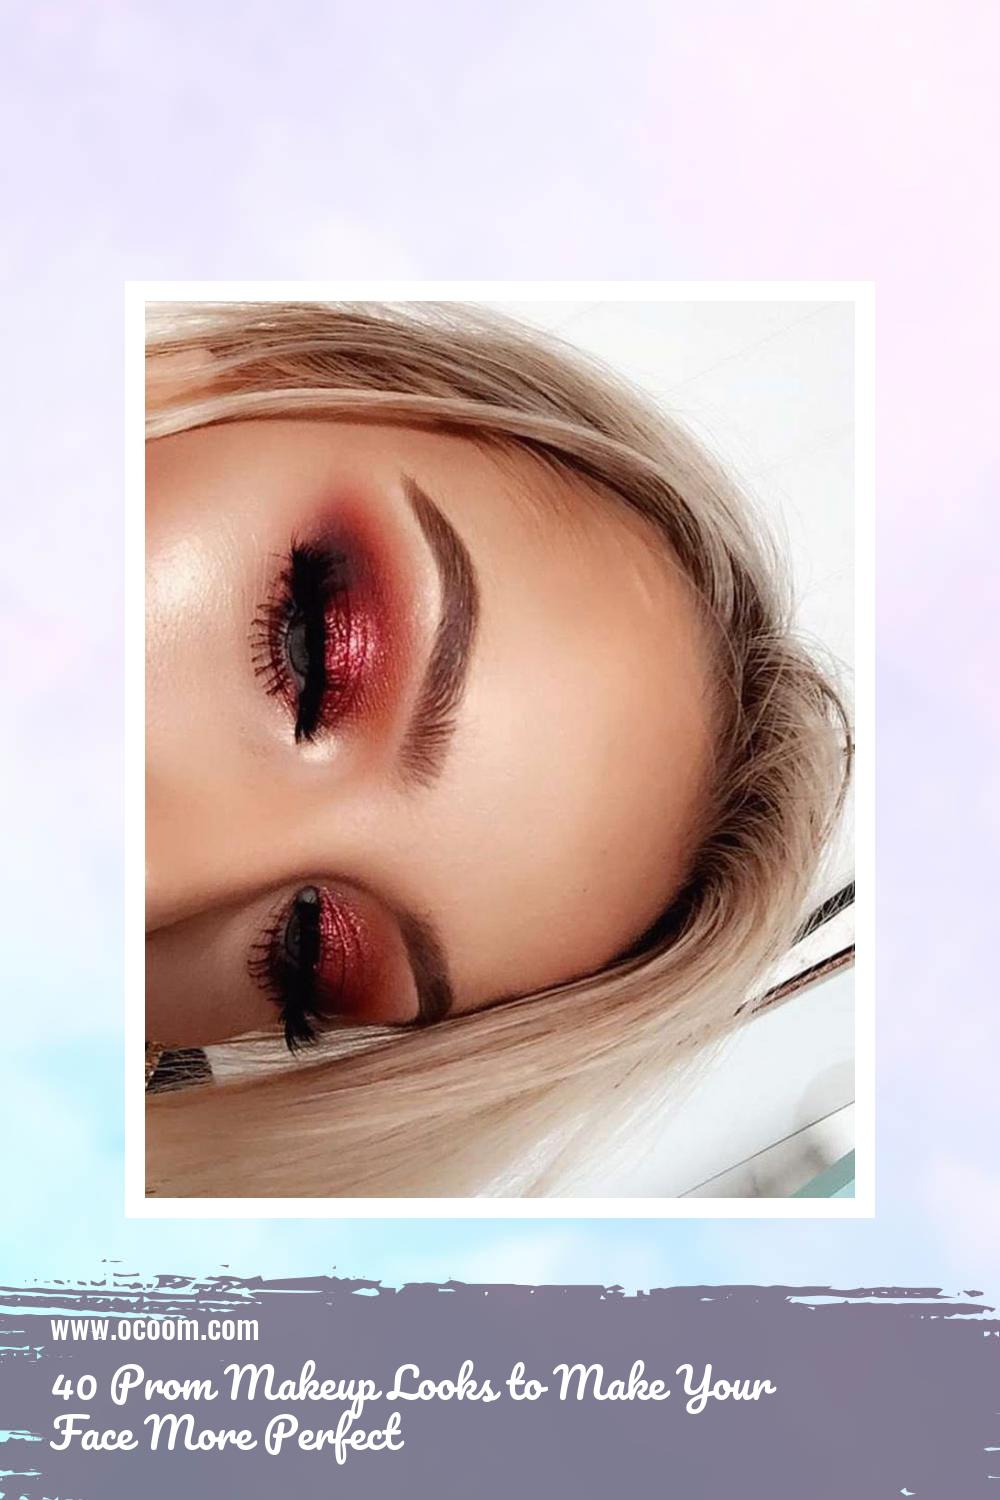 40 Prom Makeup Looks to Make Your Face More Perfect 12